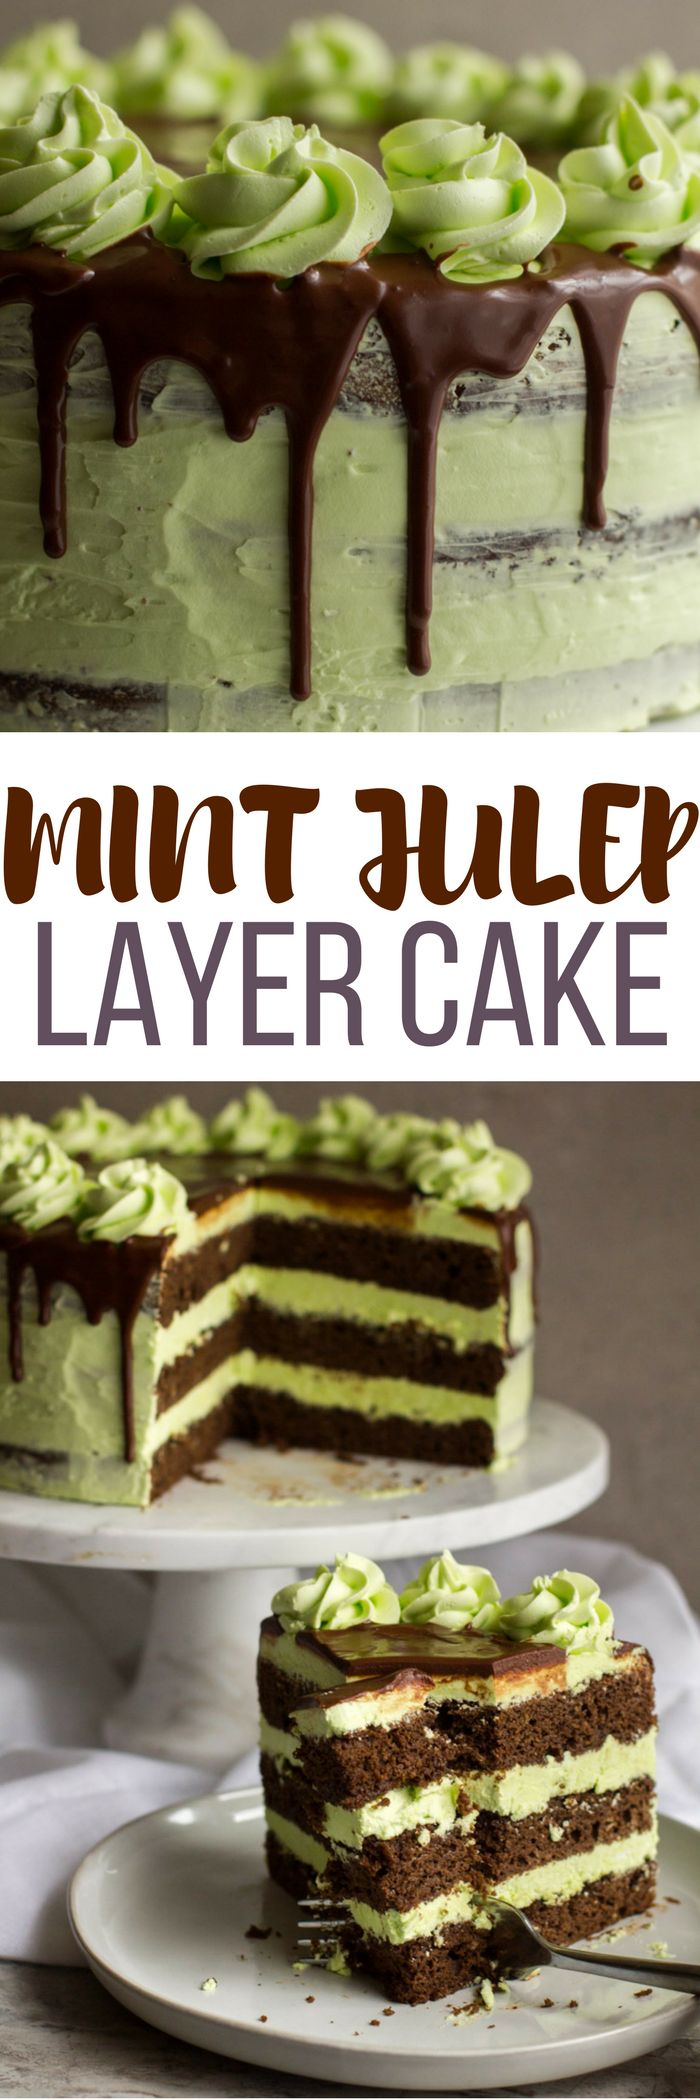 This Mint Julep Layer Cake is a delicous, moist chocolate bourbon cake with a mint swiss buttercream and chocolate ganache drip. Perfect for Derby Day or anyone that loves mint juleps!